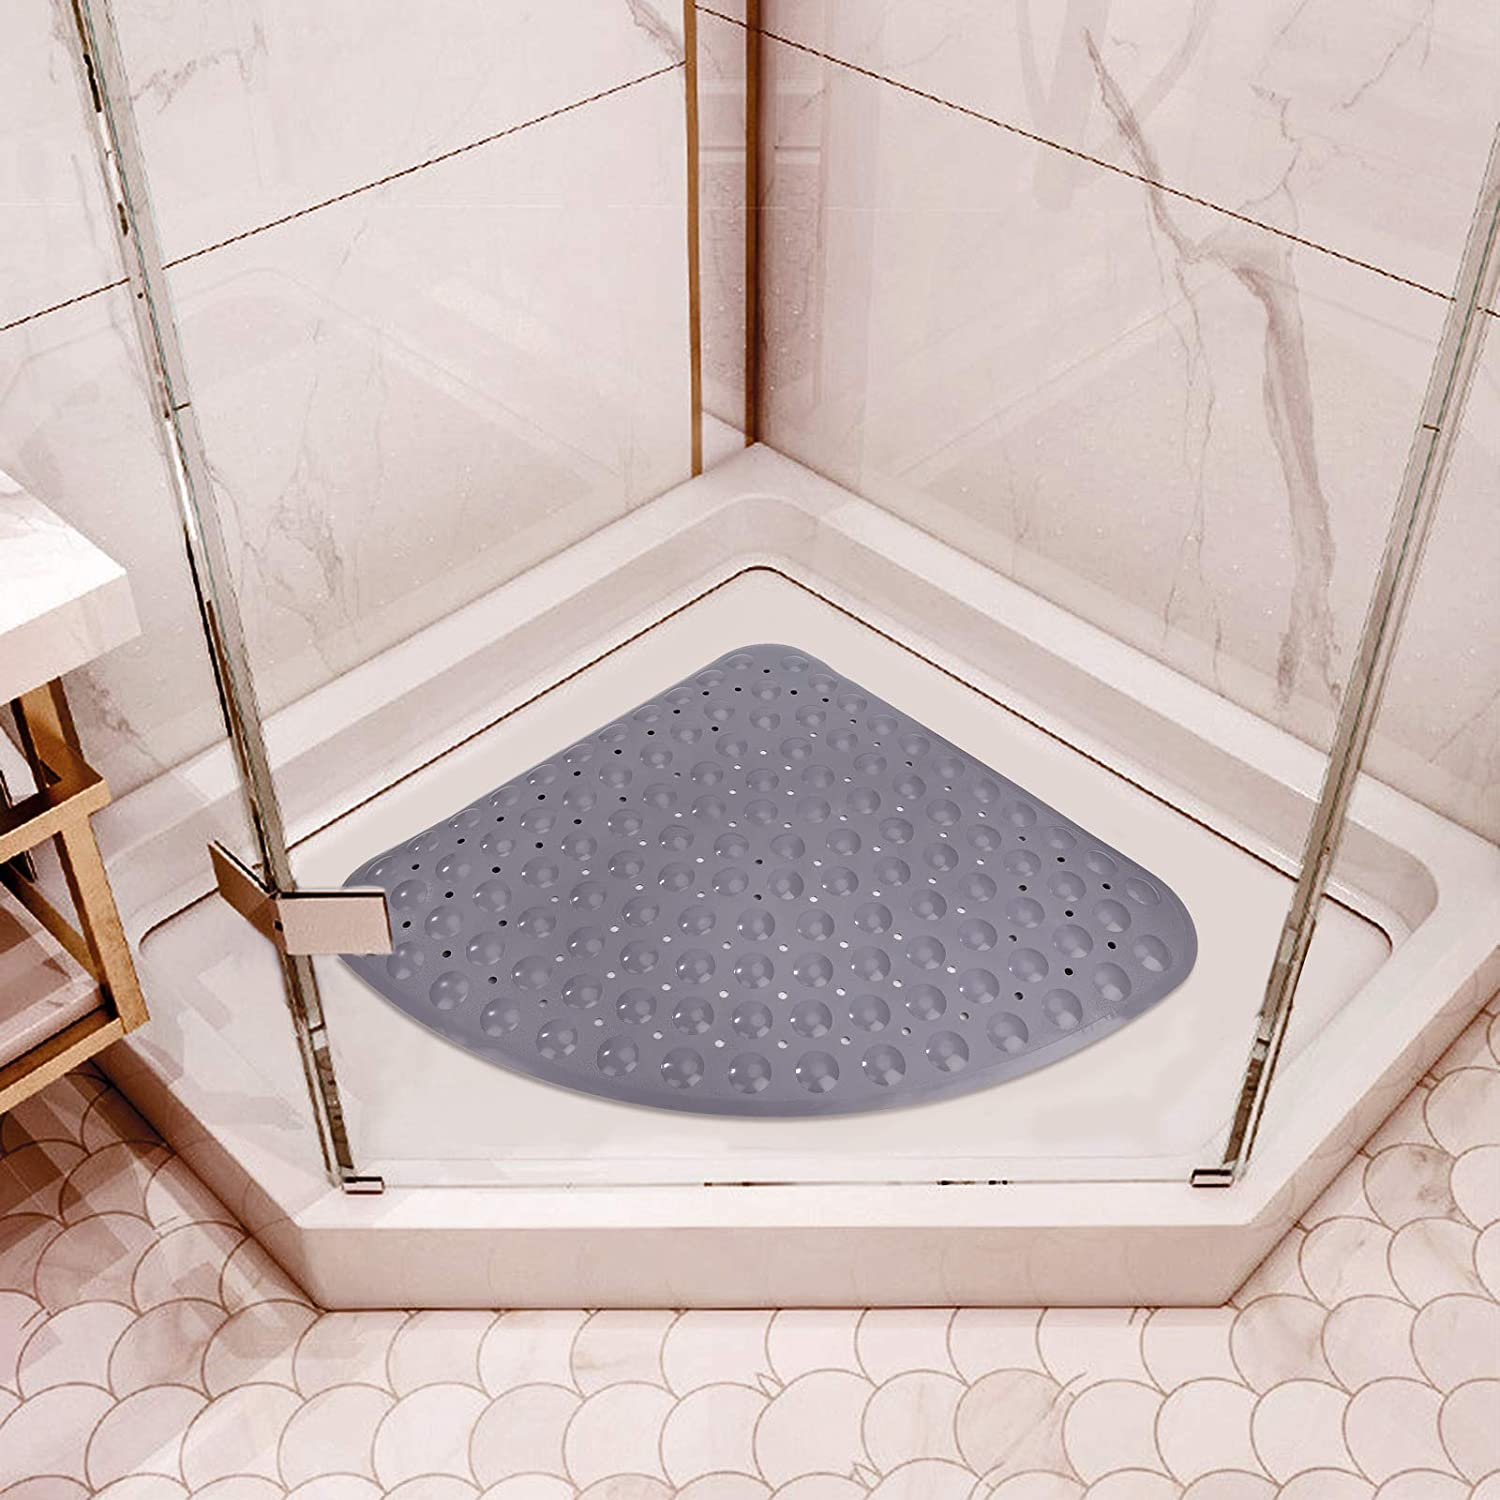 Non Slip Shower Bath Mat with Suction Cups and Drainage Holes Bathtub Safety Pad for Kids Toddler Baby 54 x 54cm Corner Anti-skid Quadrant Grip Mat for Tub Grey